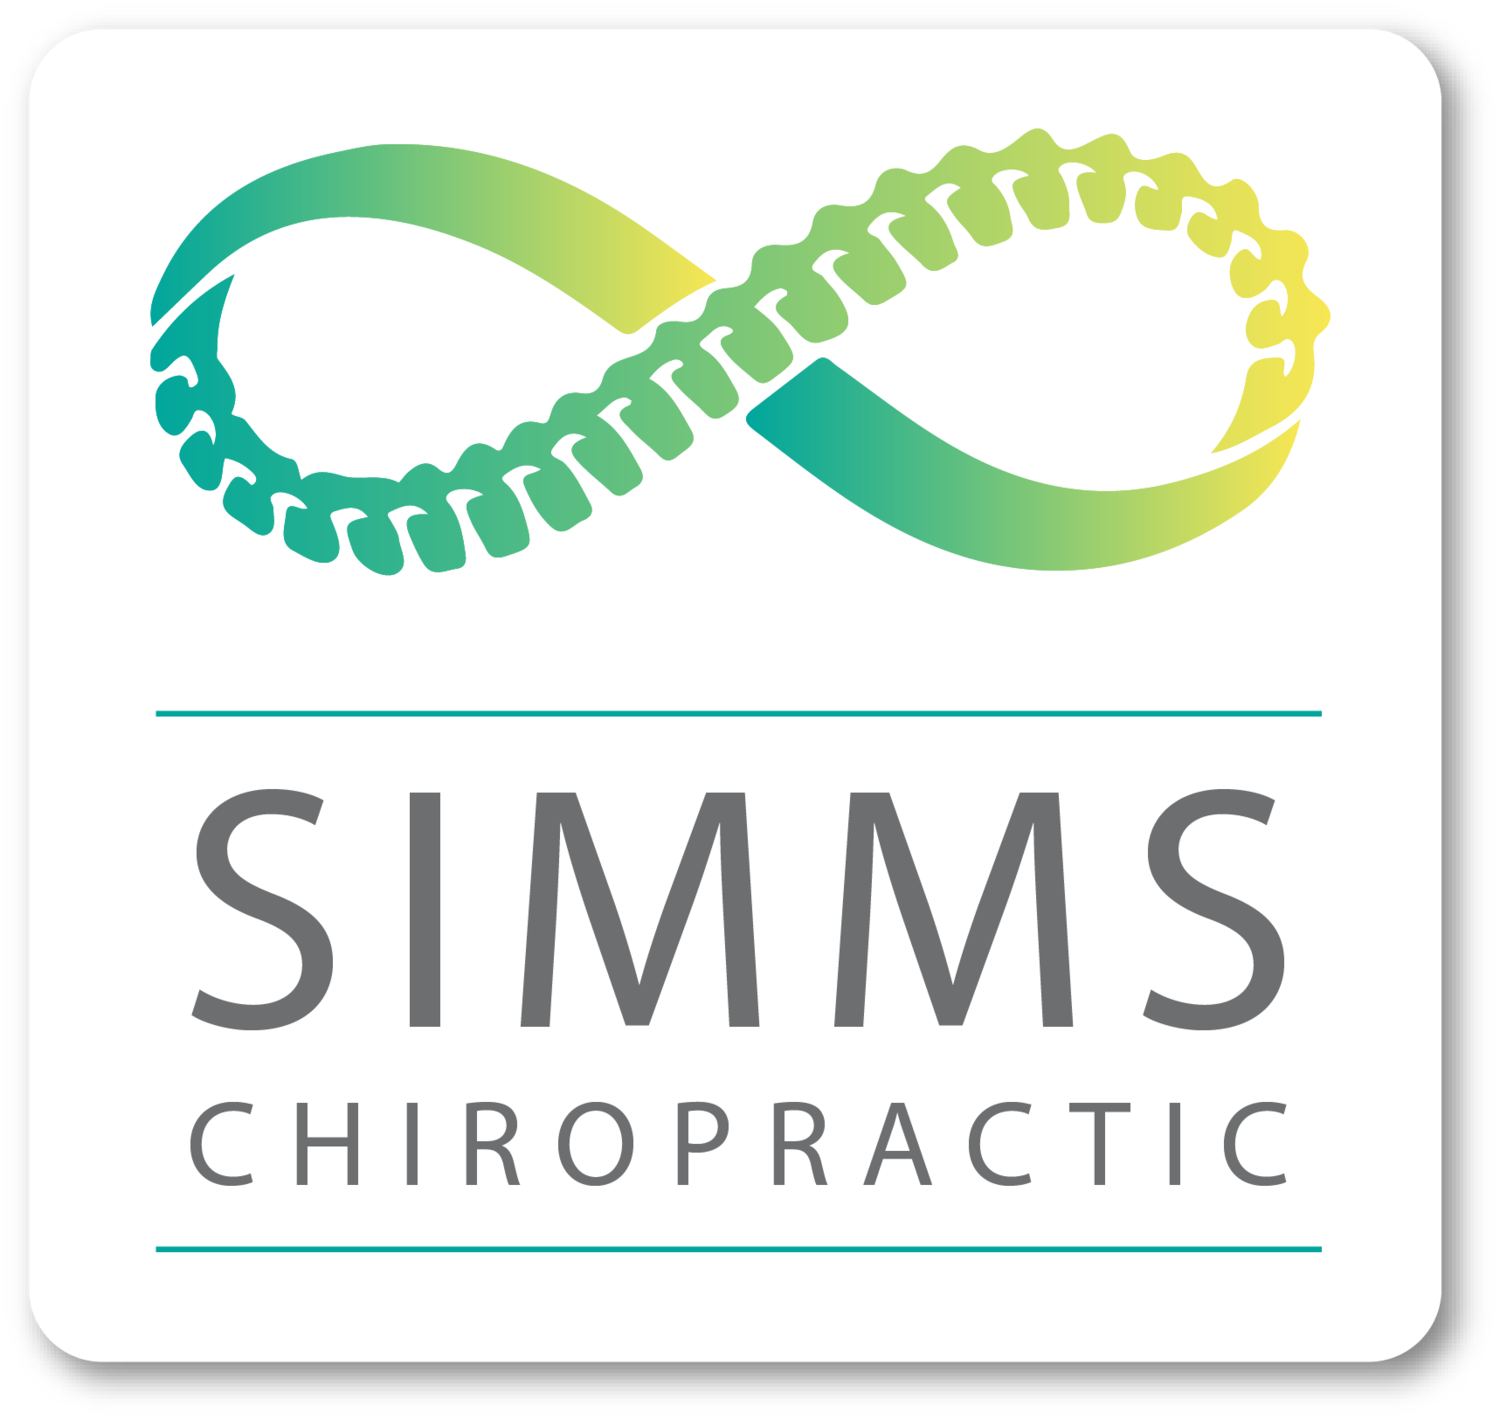 Simms Chiropractic